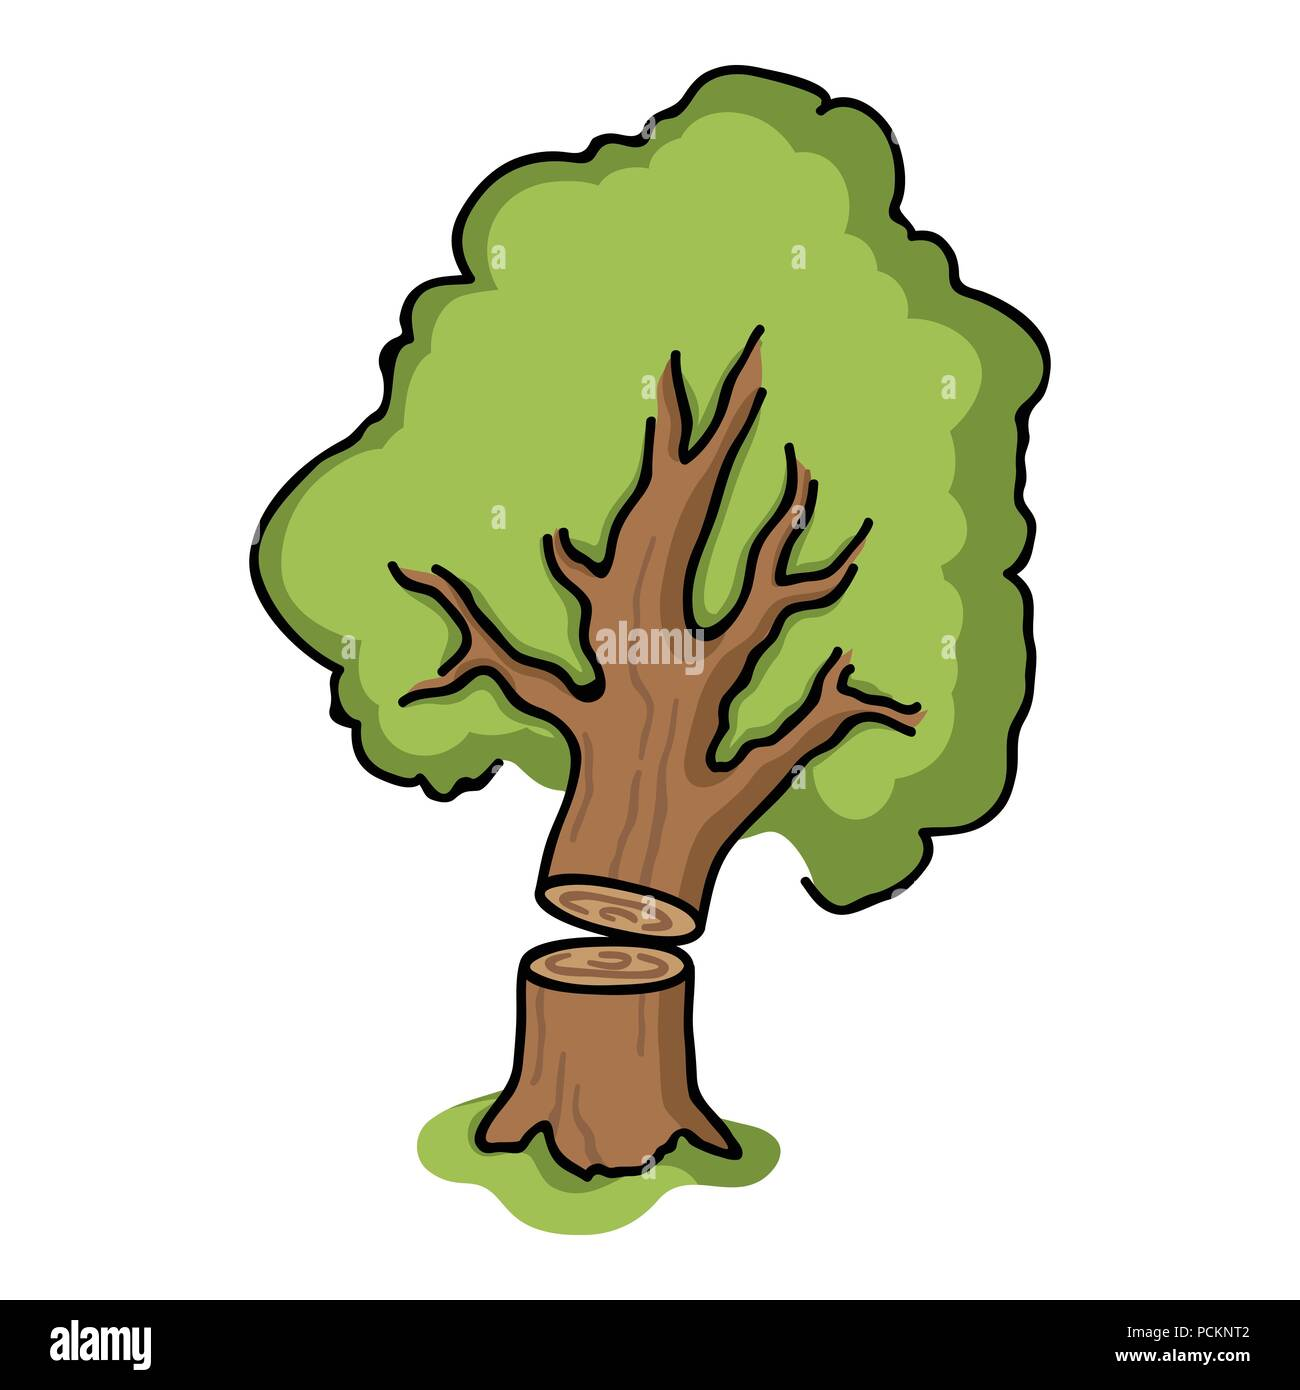 Falling Tree Icon In Cartoon Style Isolated On White Background Sawmill And Timber Symbol Vector Illustration Stock Vector Image Art Alamy Style simple cartoon autumn tree element decorative pattern, autumn tree, fall, autumn png and vector with transparent background for free download. https www alamy com falling tree icon in cartoon style isolated on white background sawmill and timber symbol vector illustration image214334514 html